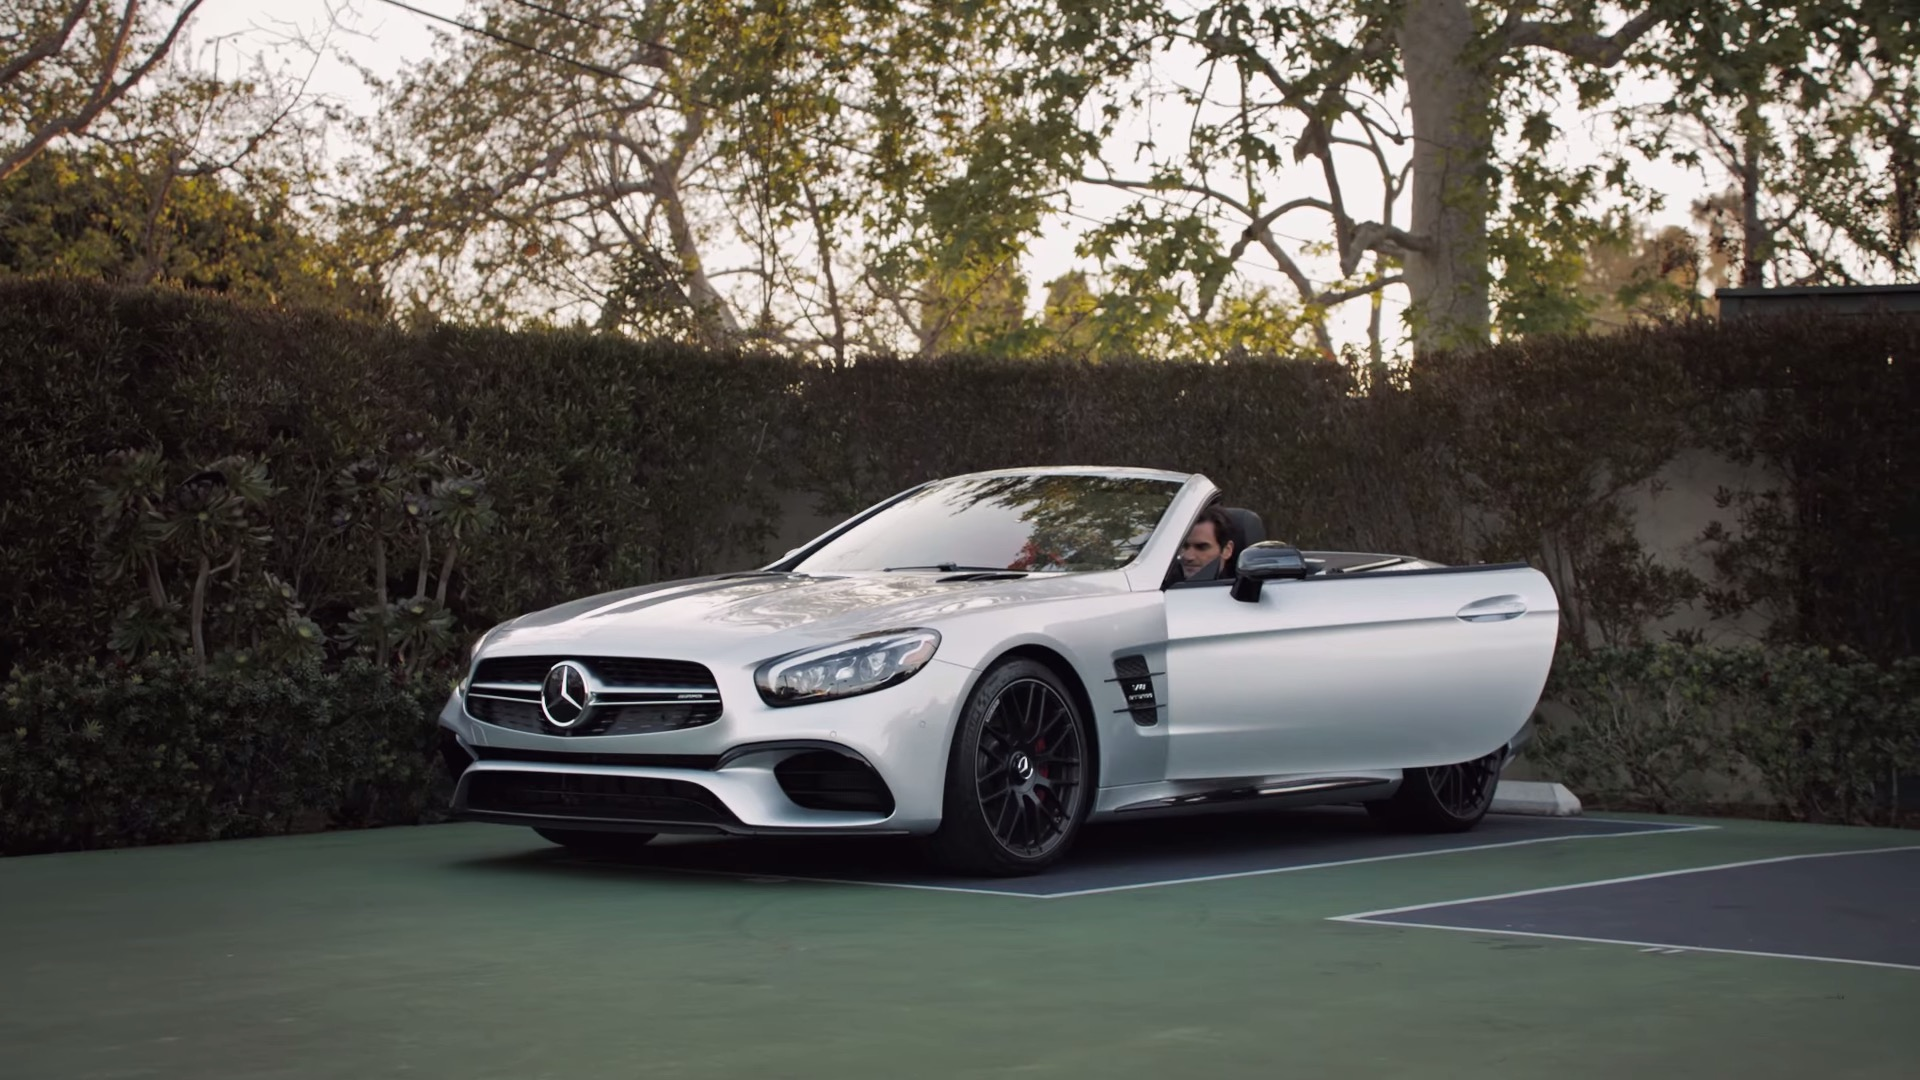 Roger federer endorses 2017 mercedes benz sl in weird for Mercedes benz commercial